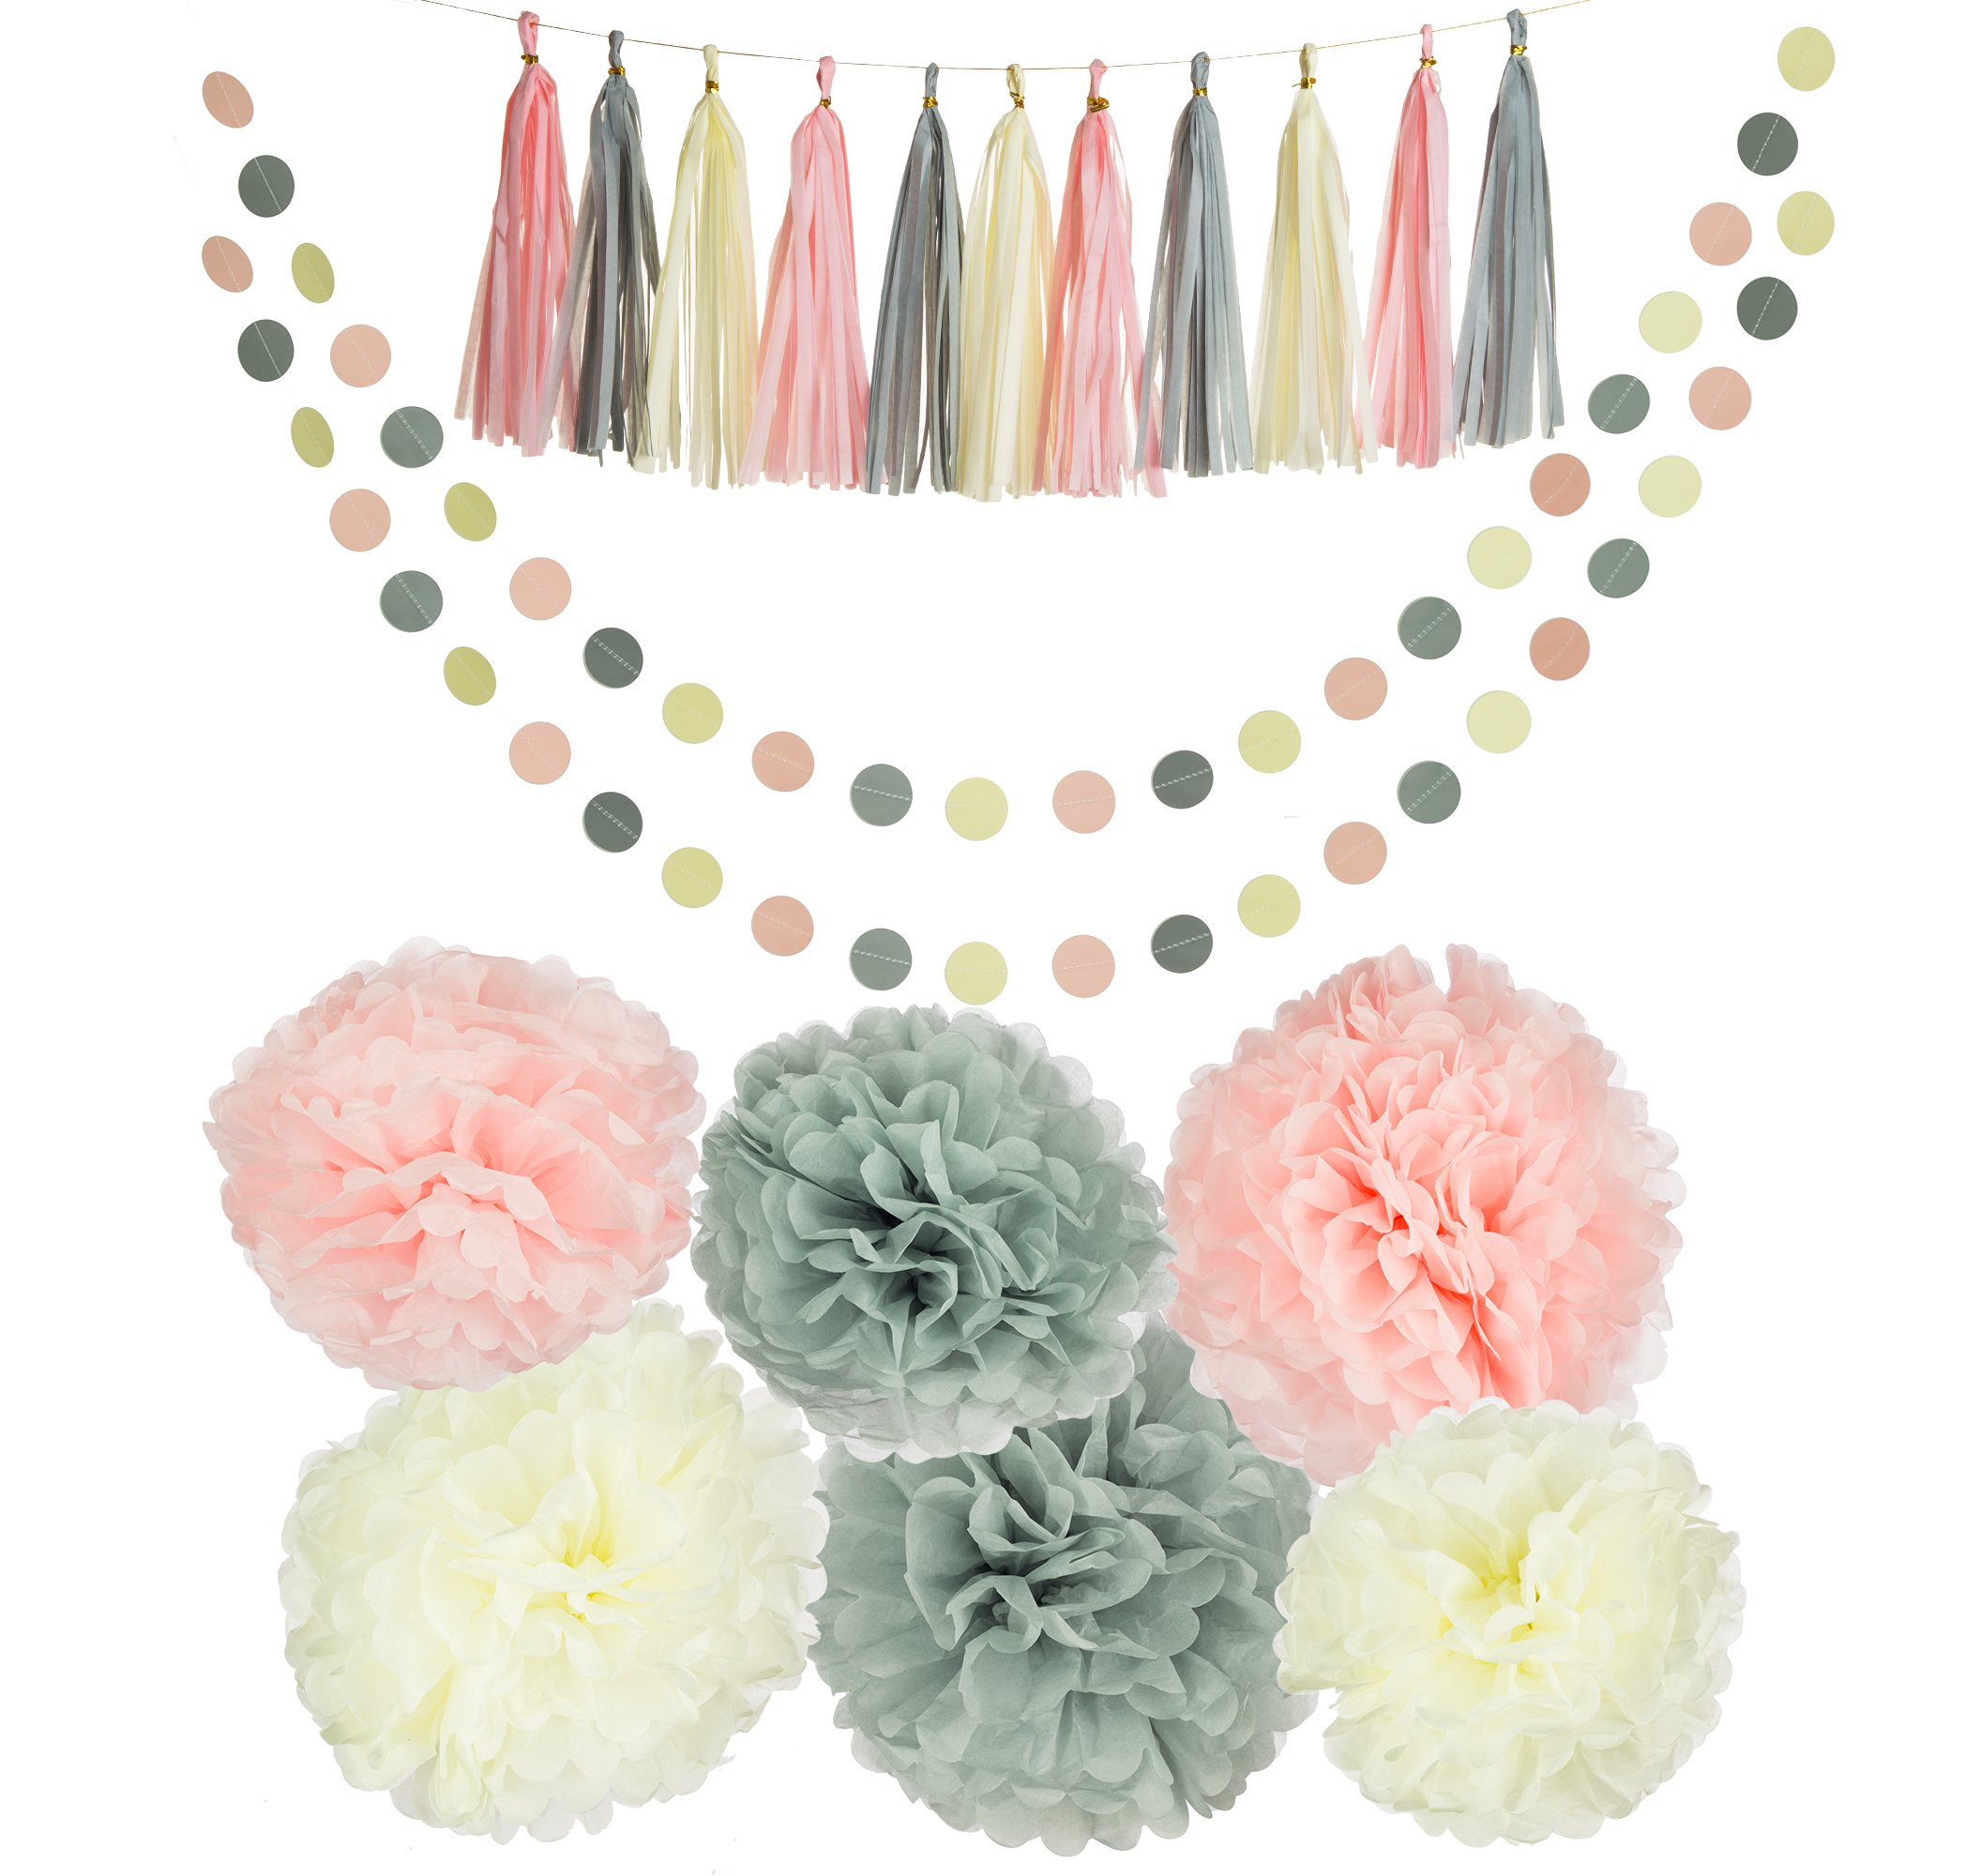 Party Charm 20PCS Tissue Decoration Kit   Pretty Party Supplies: Pom Flowers, Garland & Tassels   Pastel Pink, Gray & Ivory   Perfect poms for baby shower or girls first birthday!